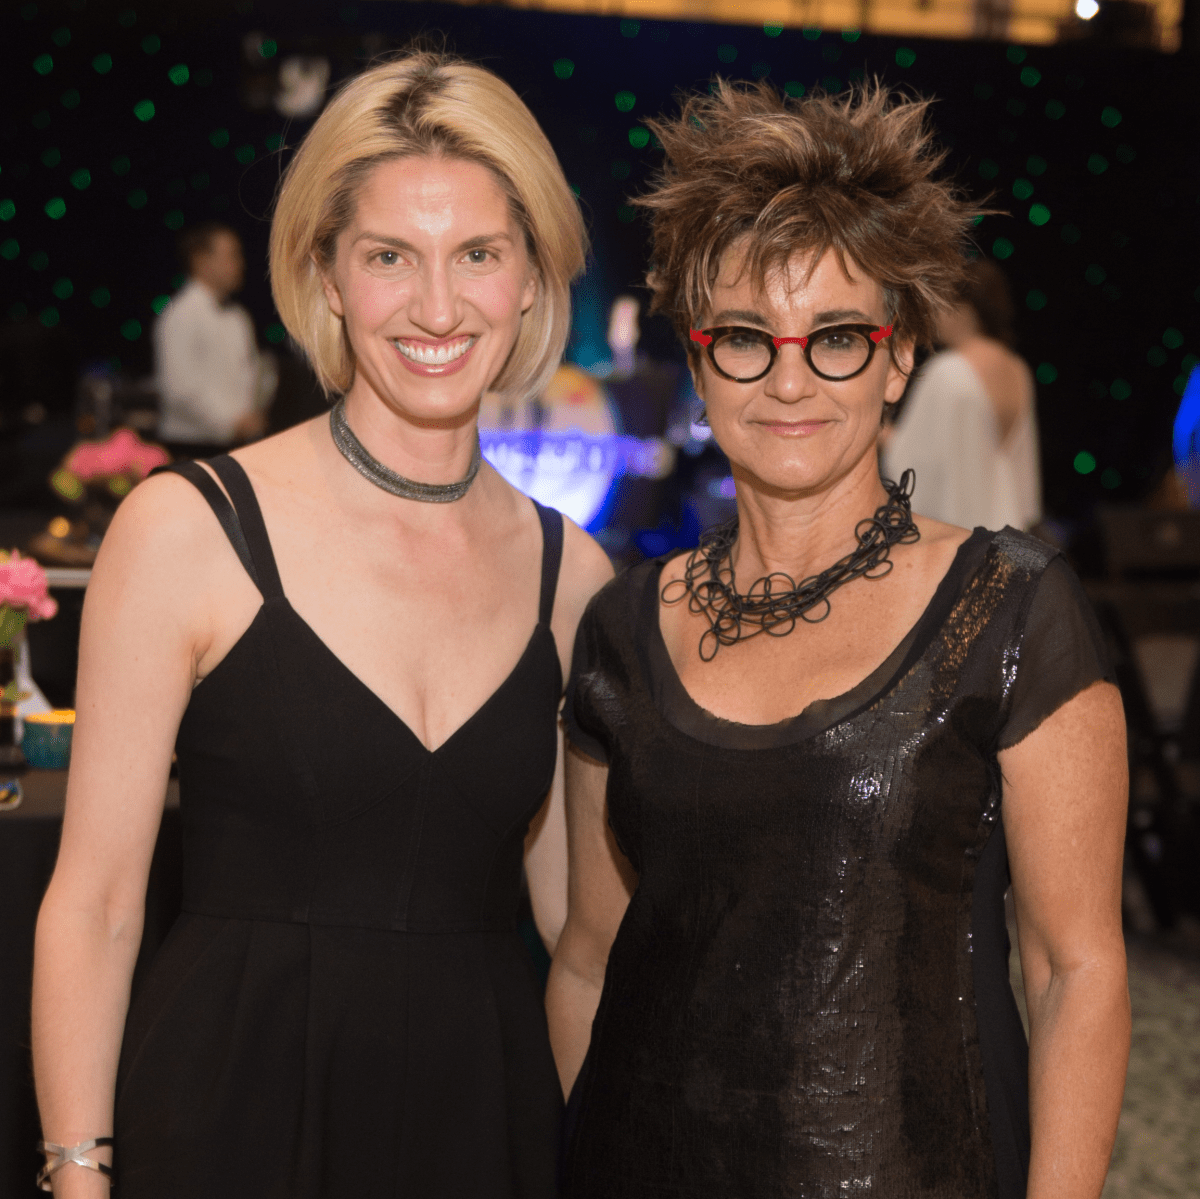 Chris Goins, Mari Carmen Ramirez at Glassell Benefit 2017